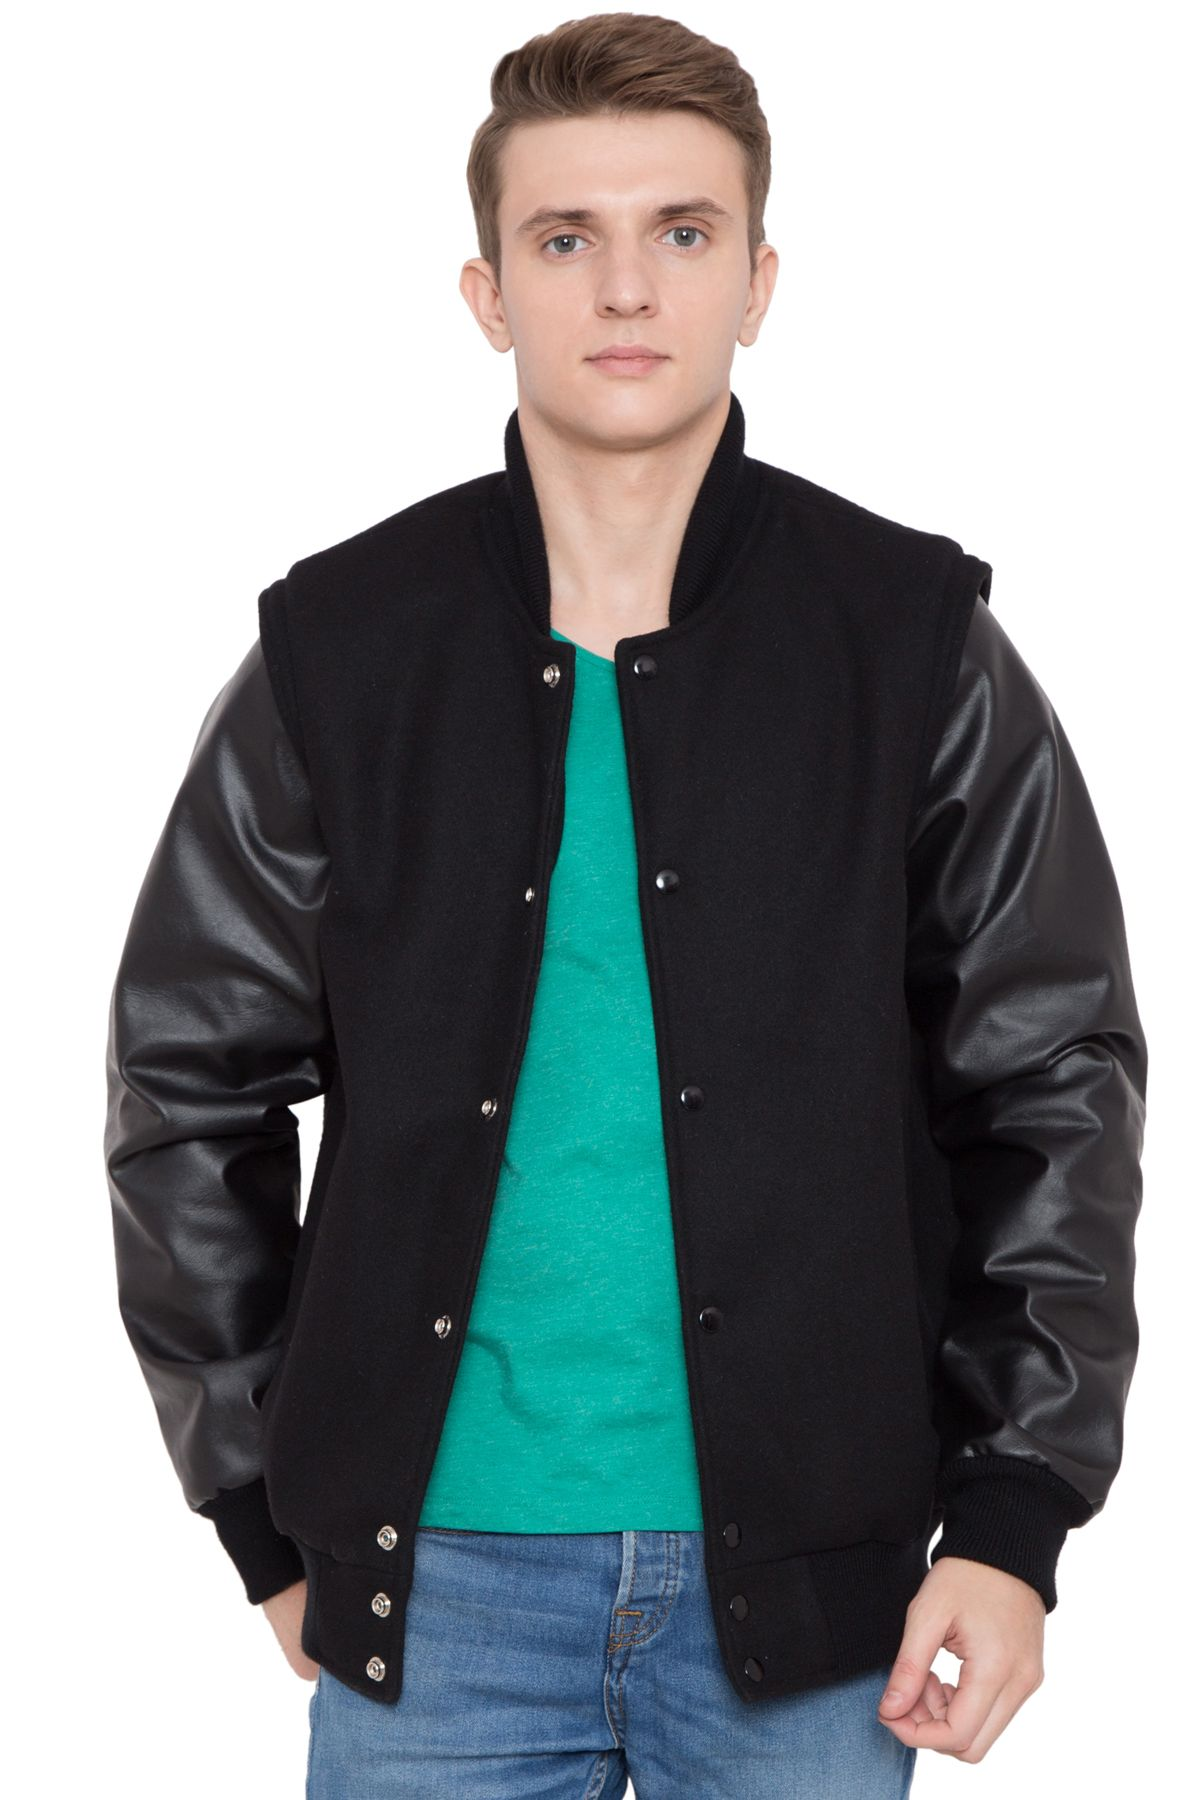 Leather sleeve varsity jackets are custom made, you get to